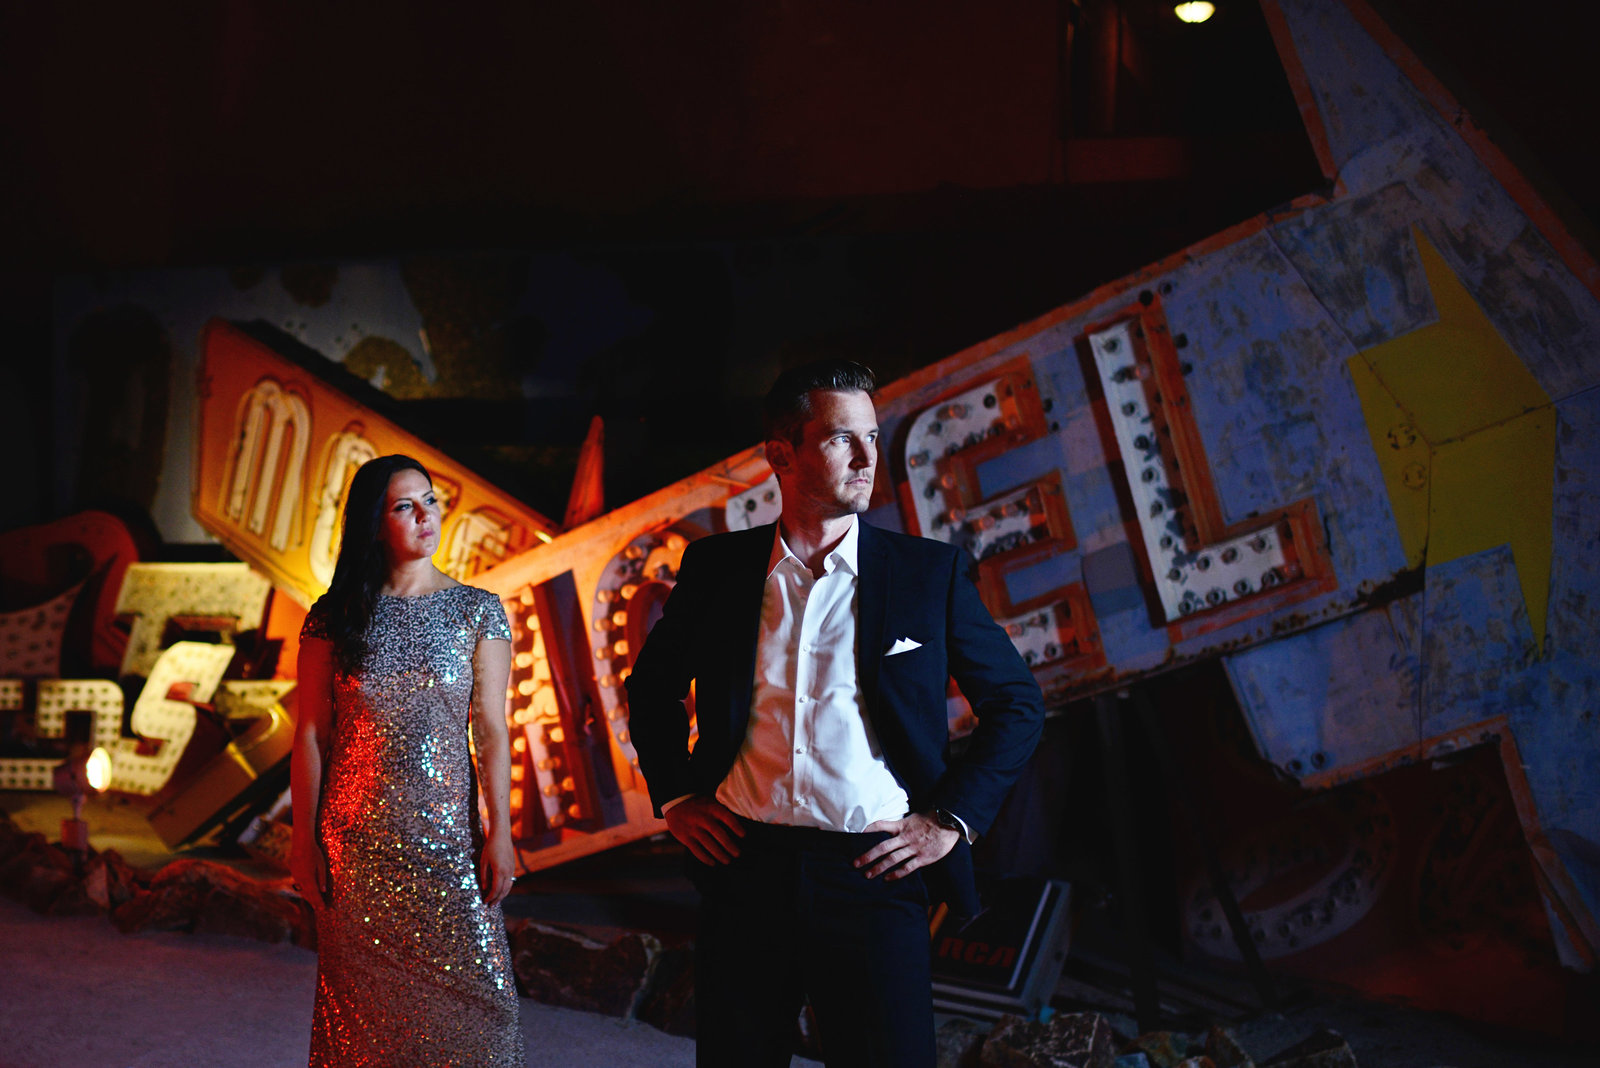 las vegas nevada destination wedding photographer bryan newfield photography 53